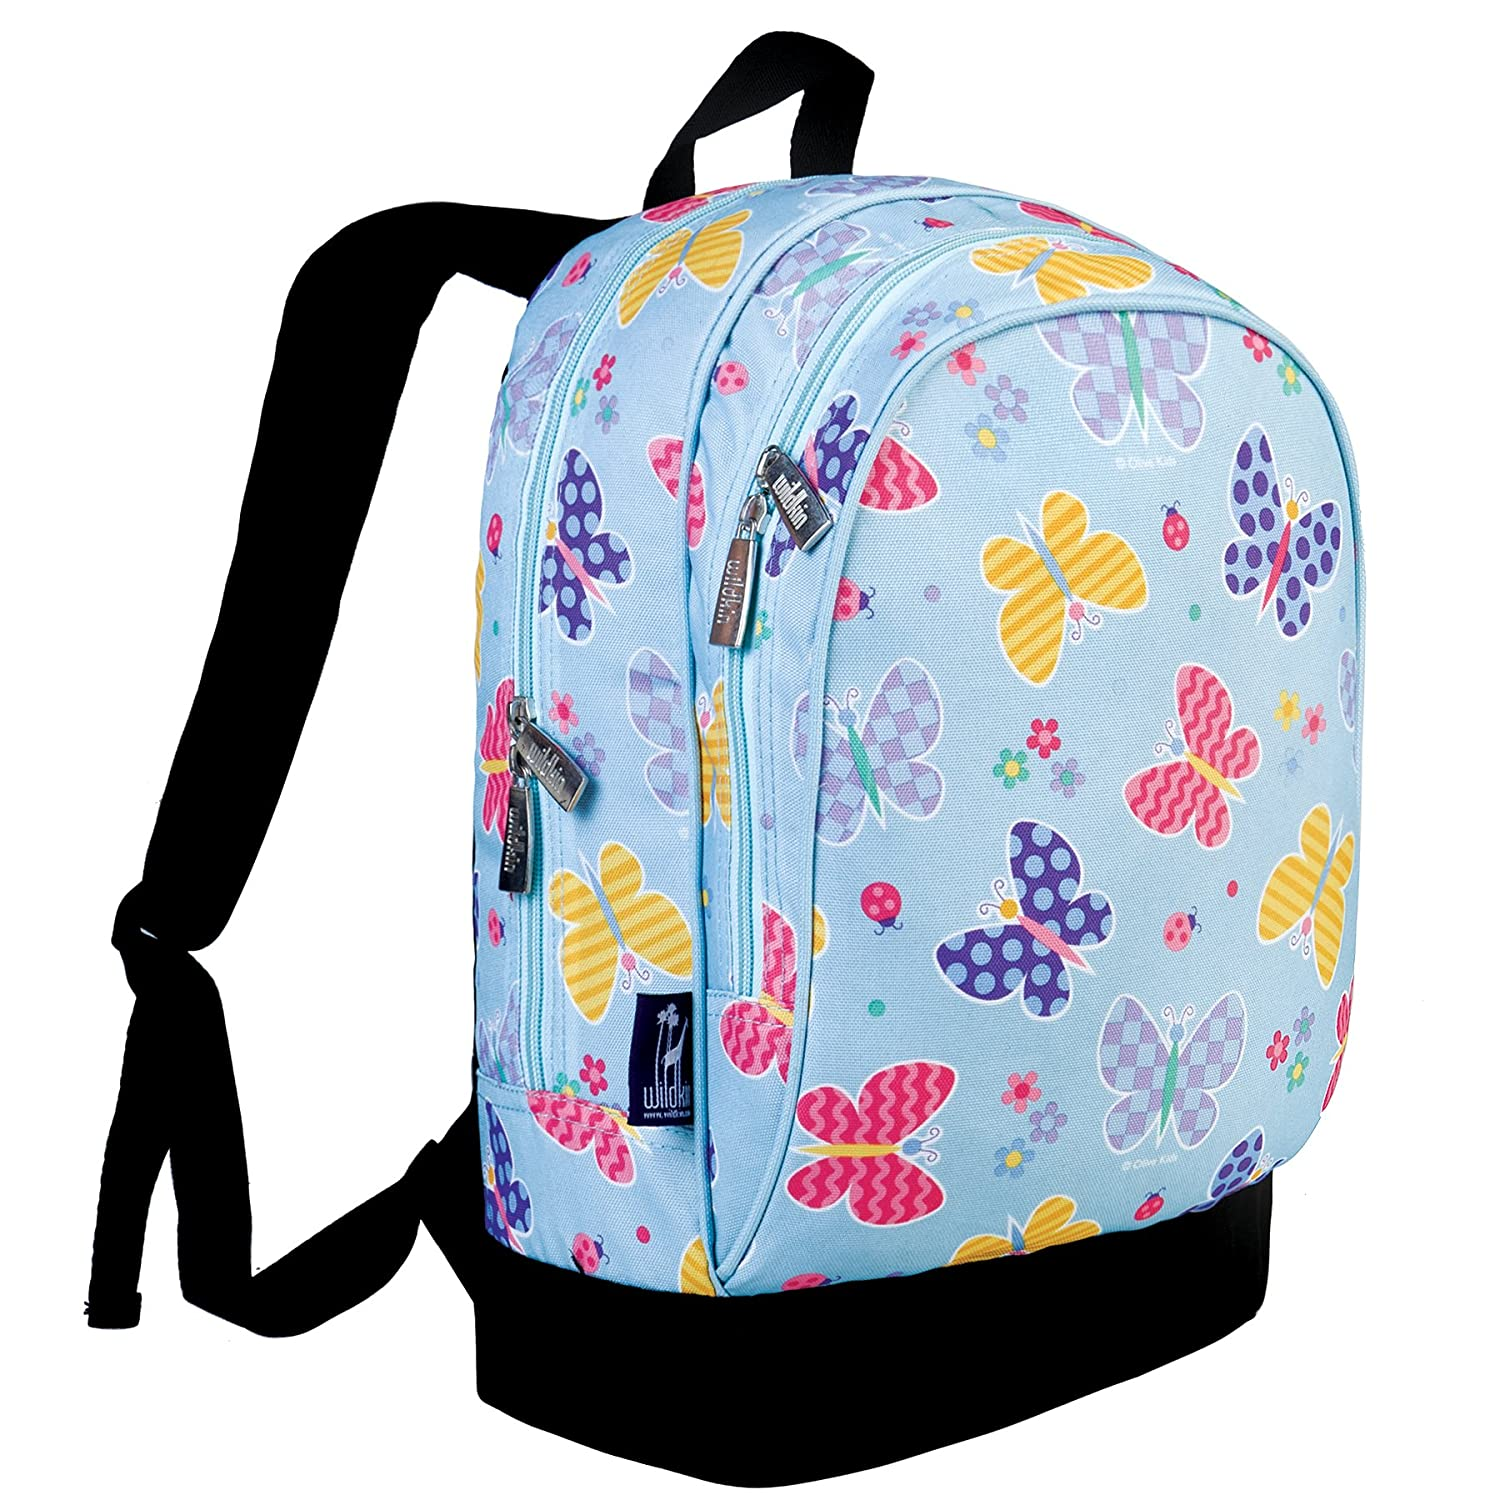 Amazon Olive Kids Butterfly Garden 15 Inch Backpack Toys & Games